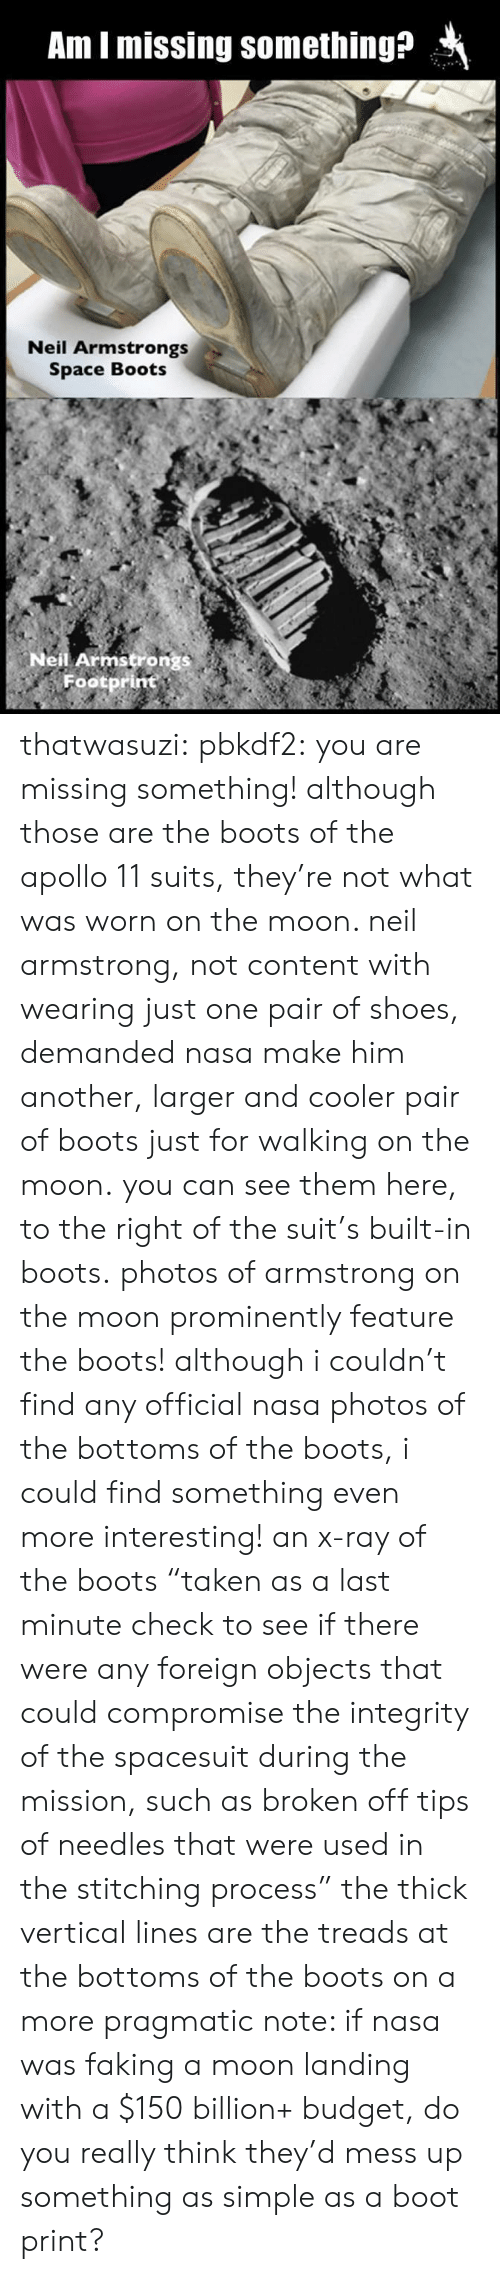 """Nasa, Shoes, and Target: Am I missing something?  Neil Armstrongs  Space Boots  Neil Armstron  Footprint thatwasuzi: pbkdf2:  you are missing something! although those are the boots of the apollo 11 suits, they're not what was worn on the moon. neil armstrong, not content with wearing just one pair of shoes, demanded nasa make him another, larger and cooler pair of boots just for walking on the moon. you can see them here, to the right of the suit's built-in boots. photos of armstrong on the moon prominently feature the boots! although i couldn't find any official nasa photos of the bottoms of the boots, i could find something even more interesting! an x-ray of the boots""""taken as a last minute check to see if there were any foreign objects that could compromise the integrity of the spacesuit during the mission, such as broken off tips of needles that were used in the stitching process"""" the thick vertical lines are the treads at the bottoms of the boots on a more pragmatic note: if nasa was faking a moon landing with a $150 billion+ budget, do you really think they'd mess up something as simple as a boot print?"""